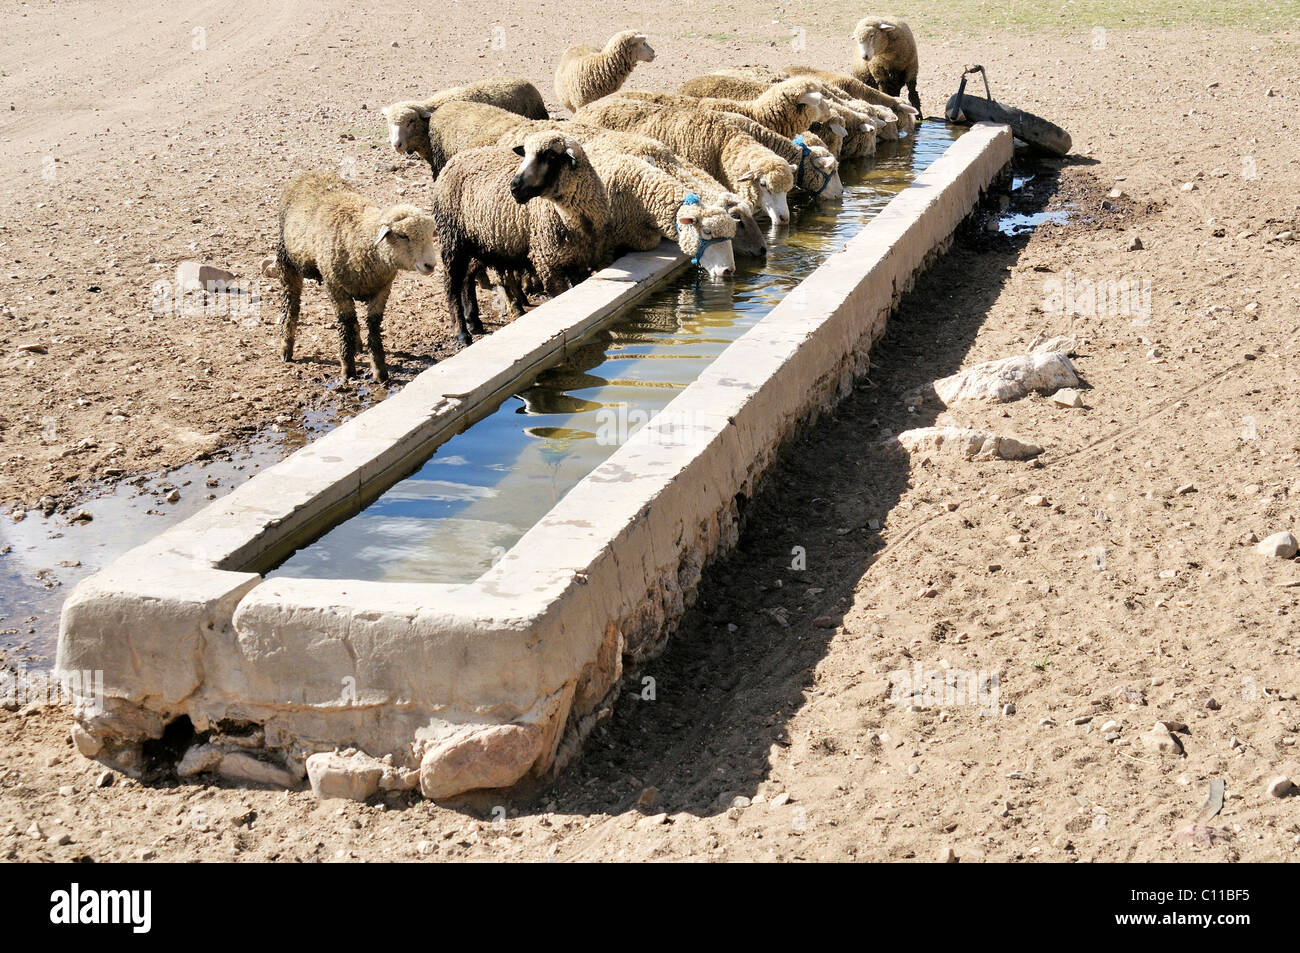 Sheep at a trough, Altiplano Bolivian highland, Oruro Department, Bolivia, South America - Stock Image